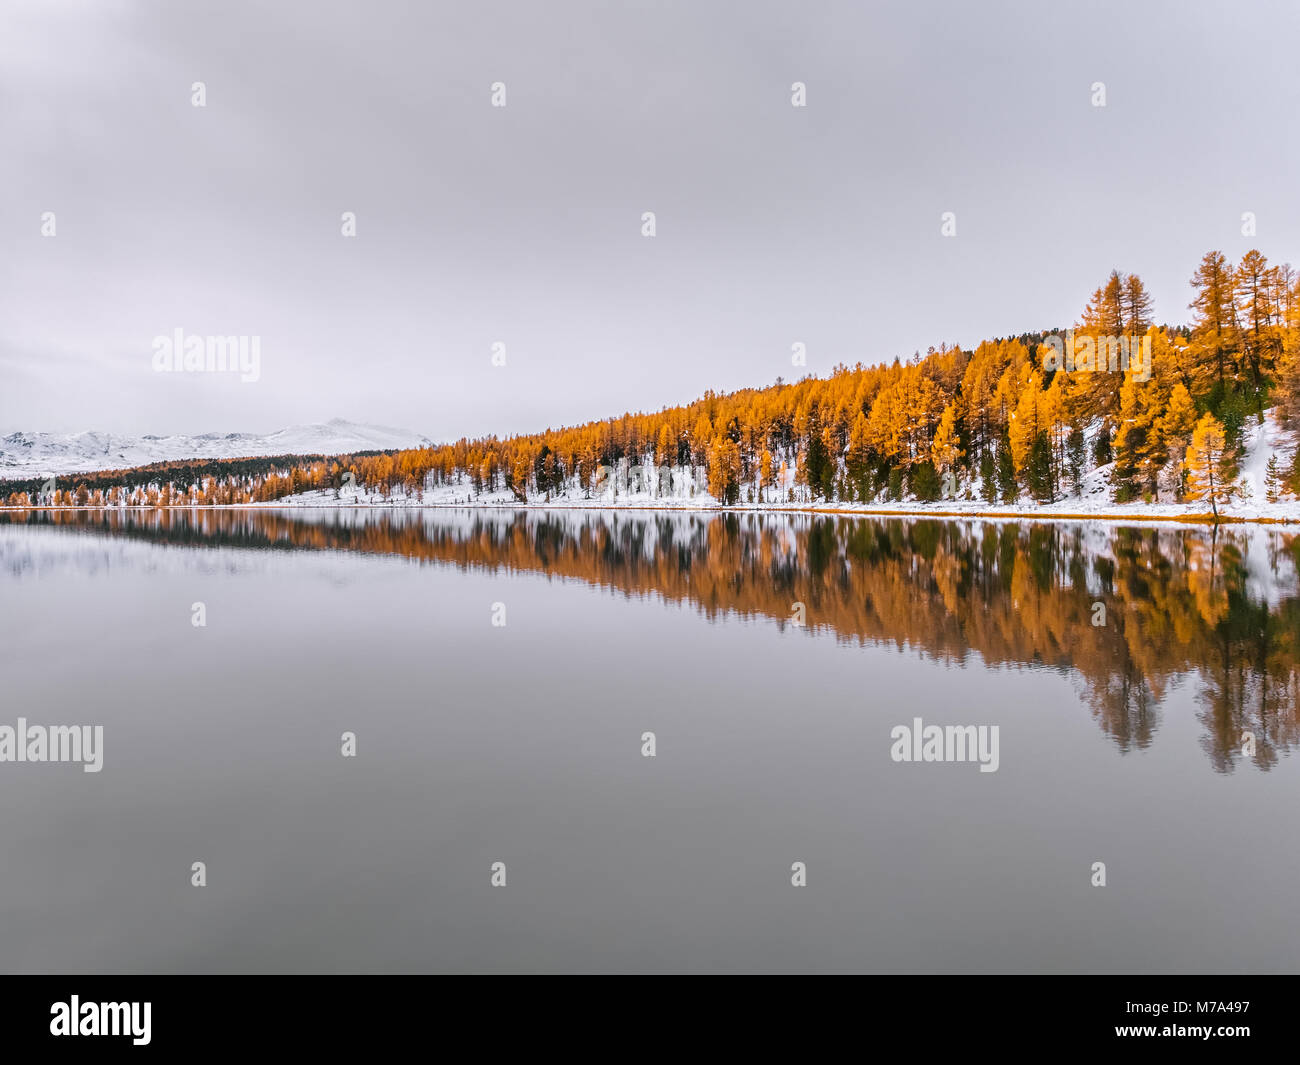 Beautiful reflection of autumn trees in the still water. Yellow larches and green spruces are covered in snow. A - Stock Image